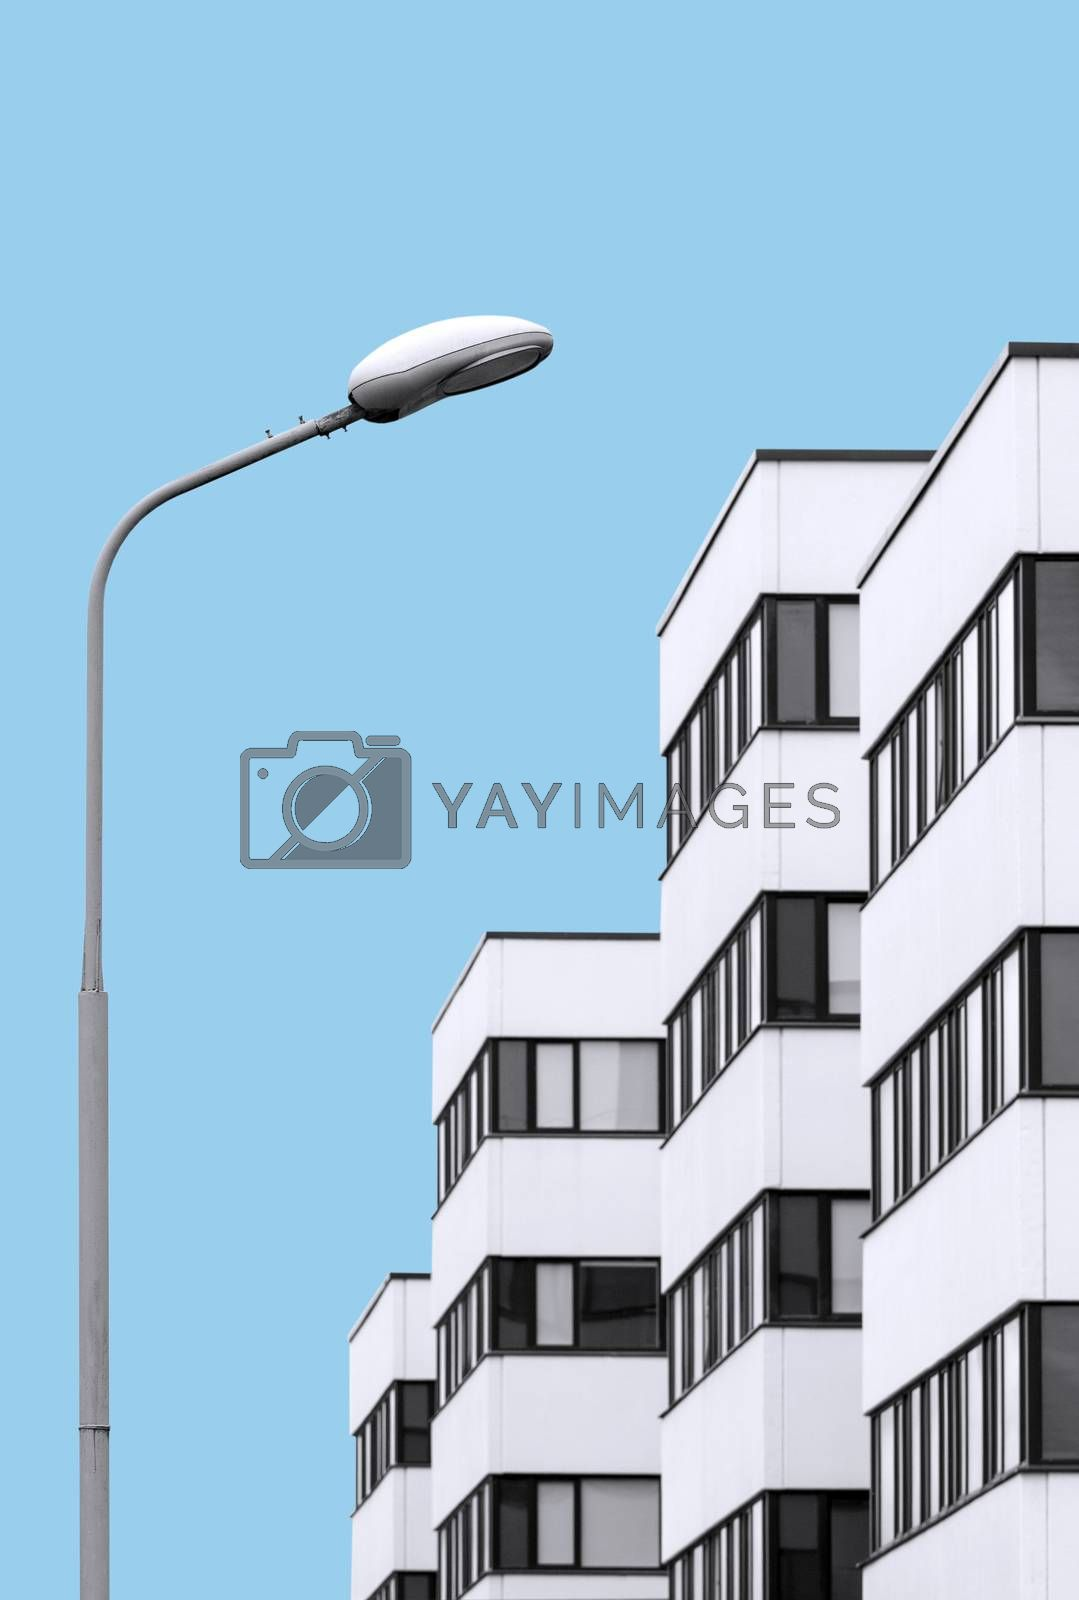 Abstract architecture concept on flat cyan color background. Residential house in the background and street lamp in focus in foreground